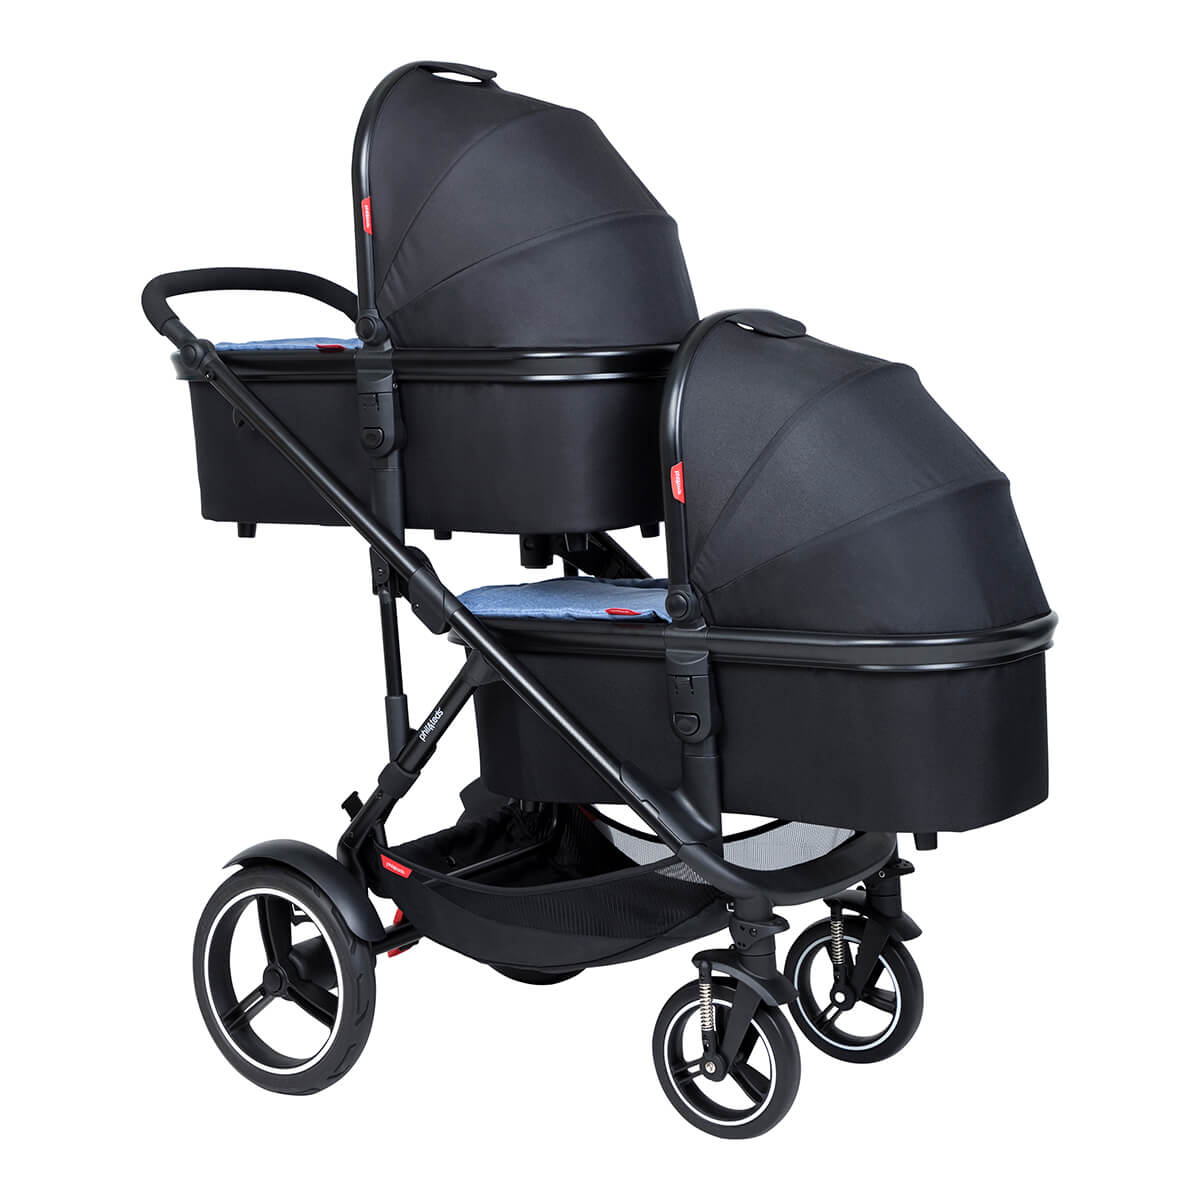 https://cdn.accentuate.io/4509529571416/19272668414040/philteds-voyager-inline-buggy-with-double-snug-carrycots-v1626484746249.jpg?1200x1200